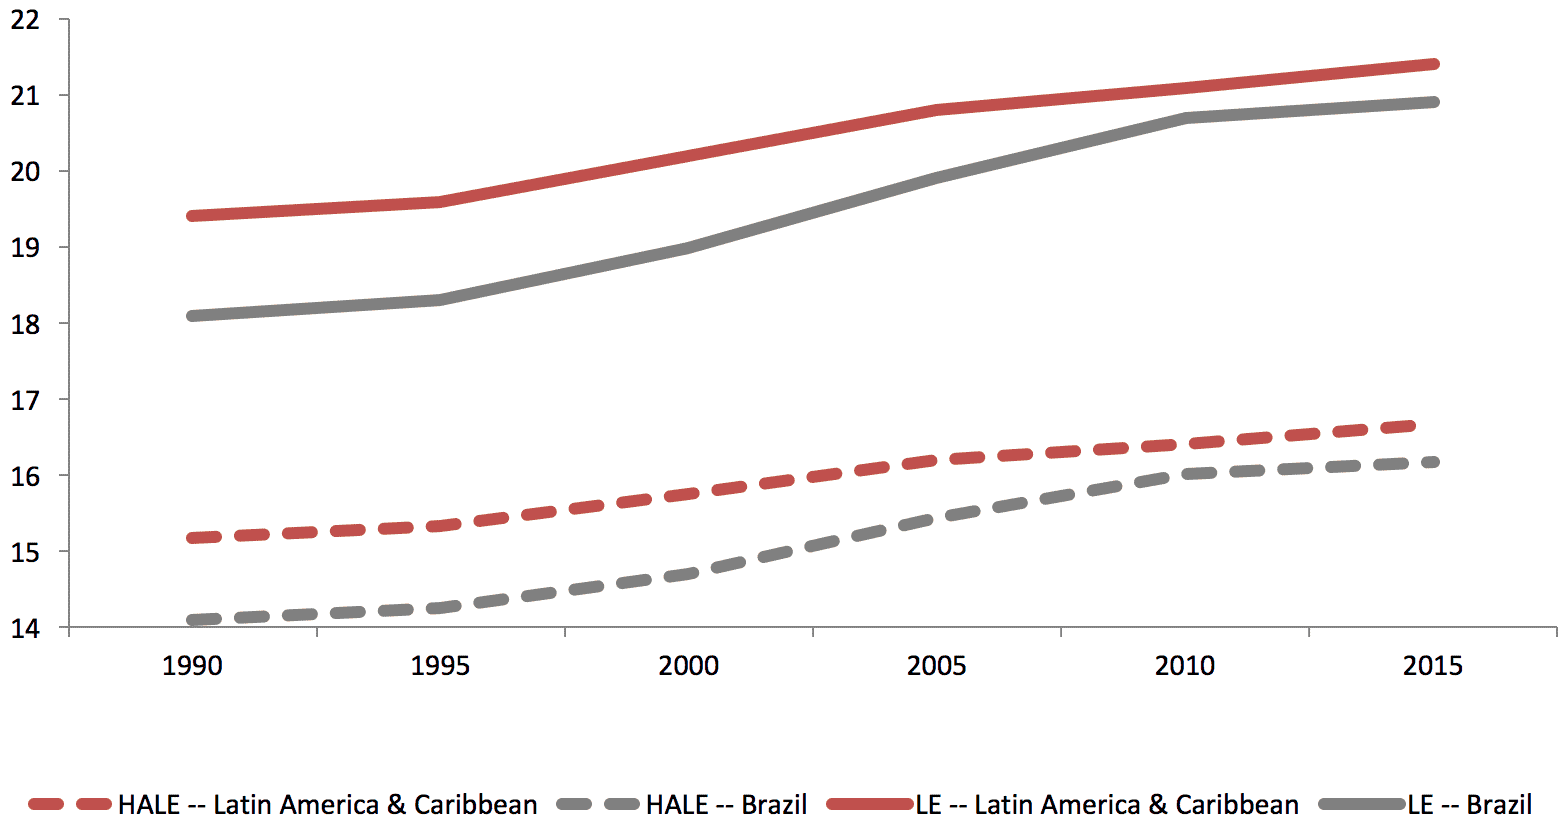 brazil-life-expectancy-and-healthy-life-expectancy.png